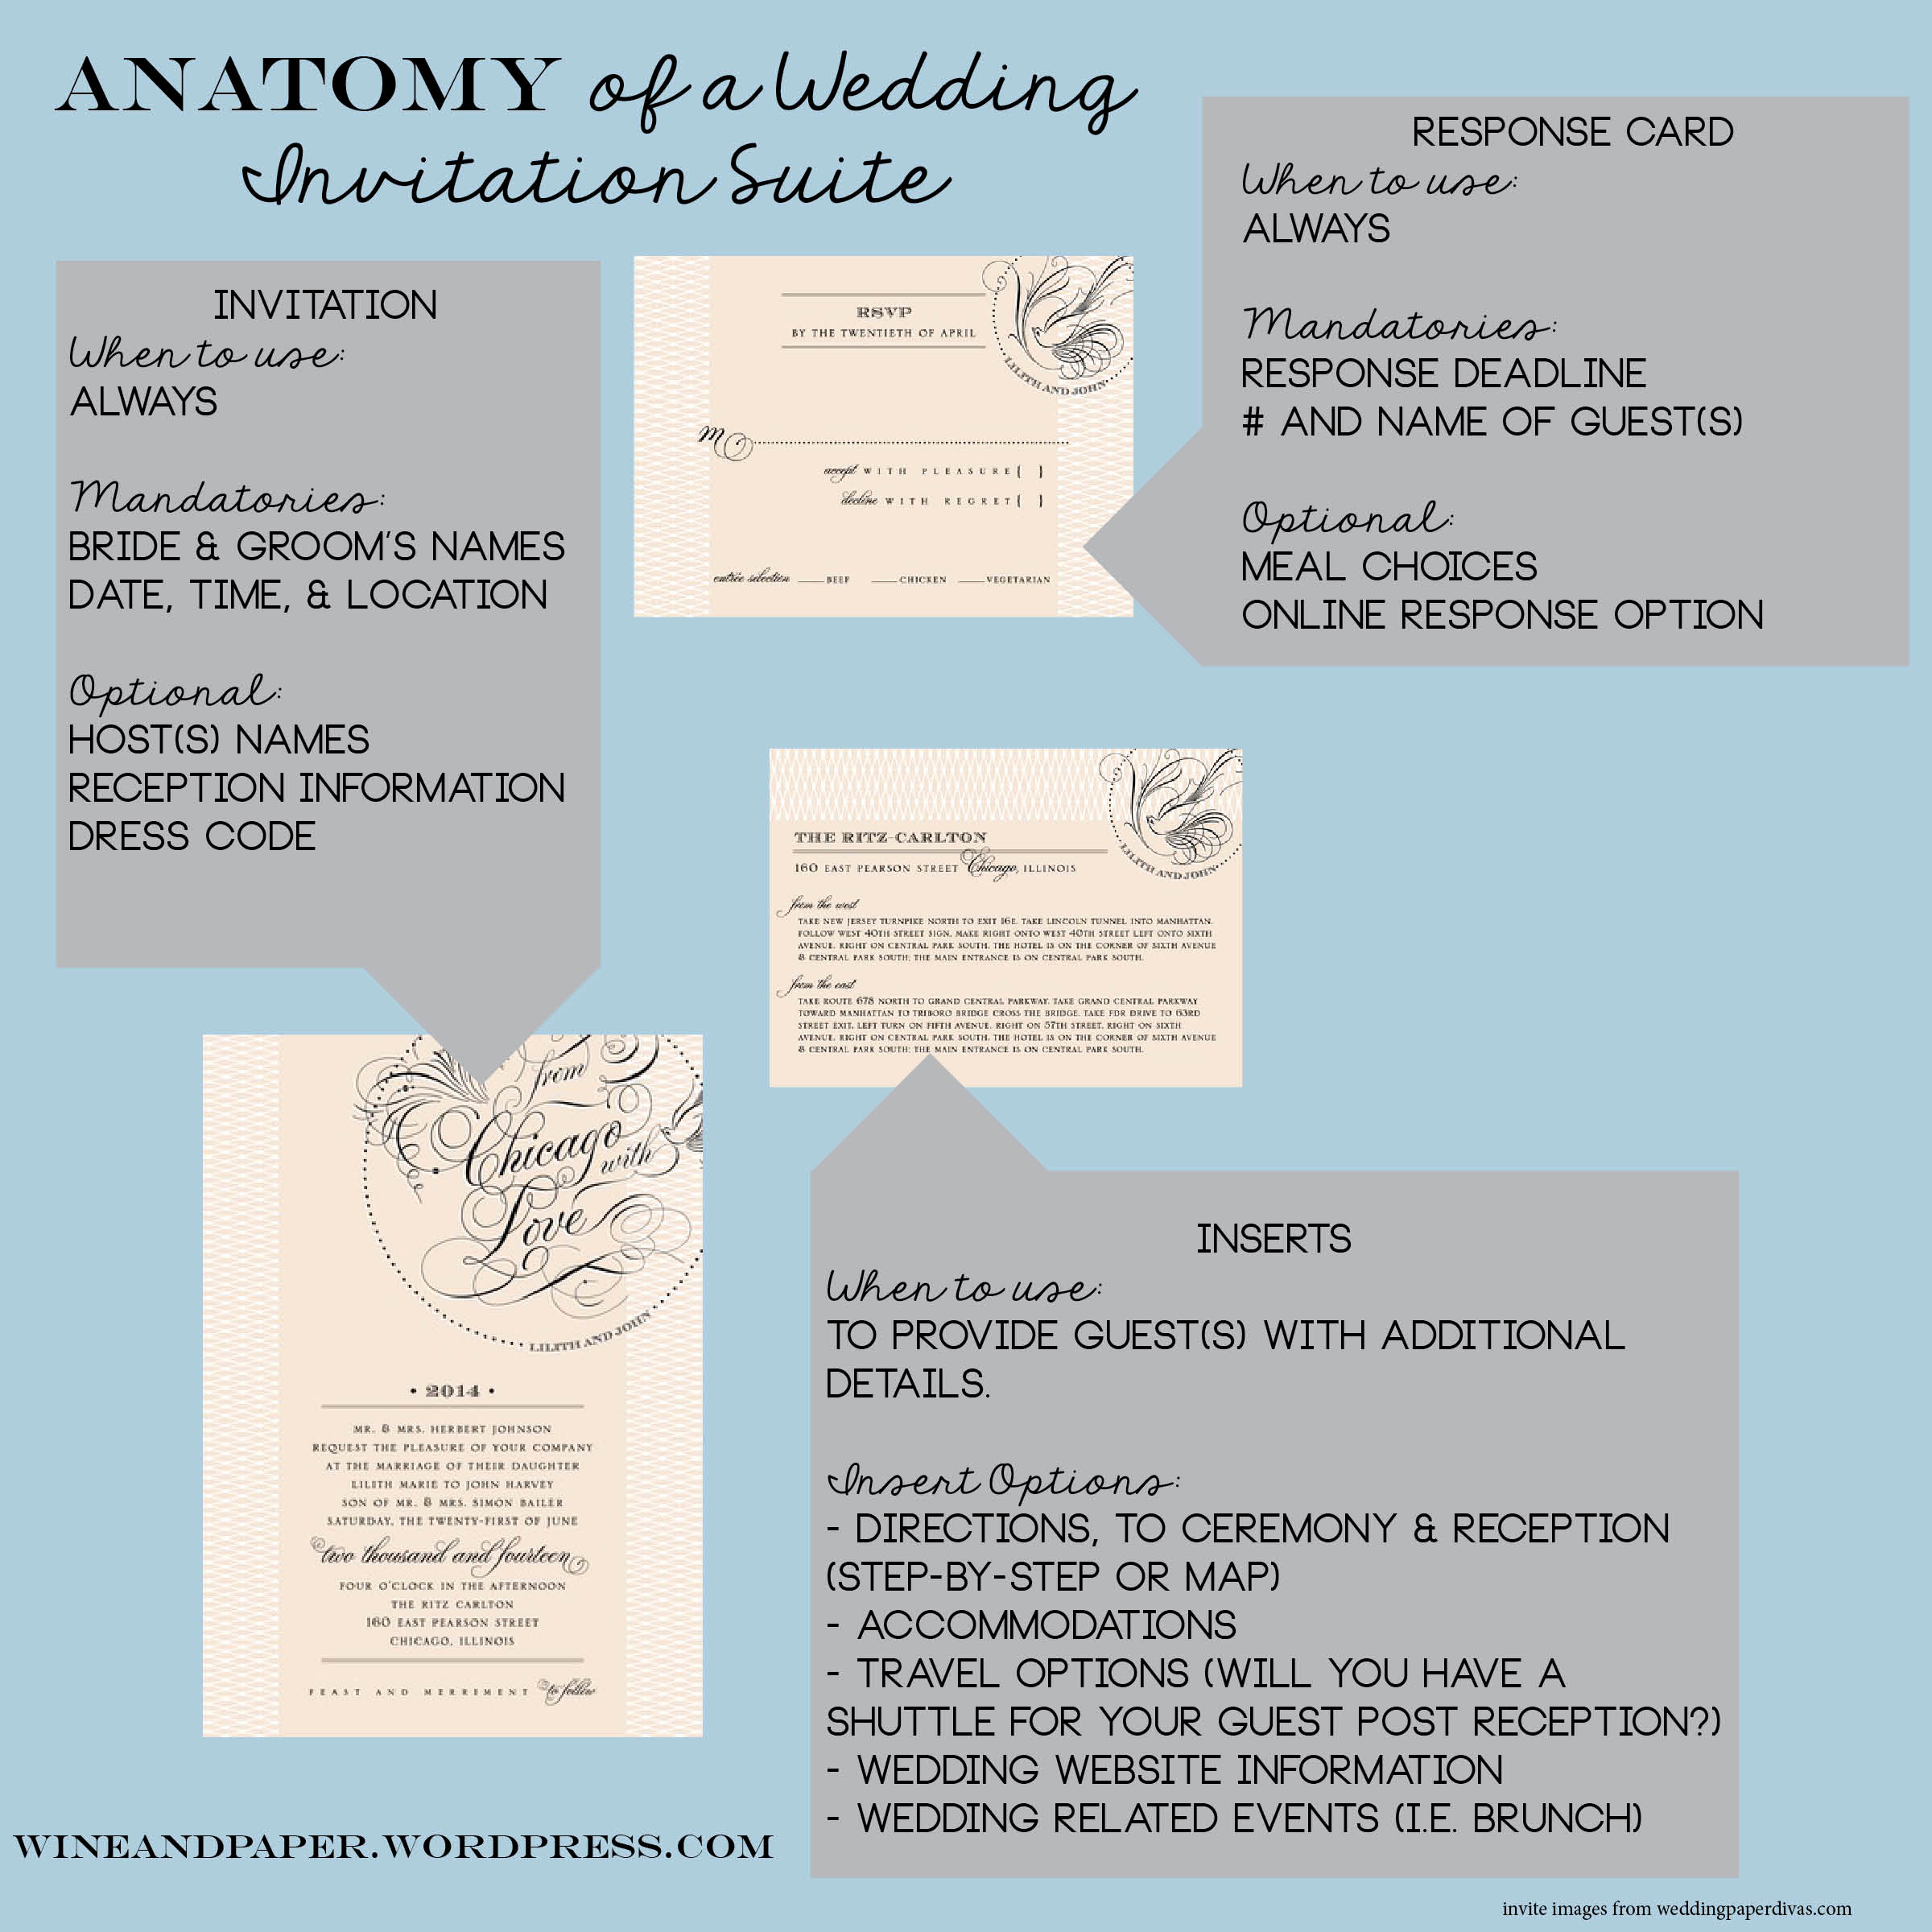 Wedding Invitation Insert Templates Beautiful the Anatomy Of A Wedding Invitation Suite